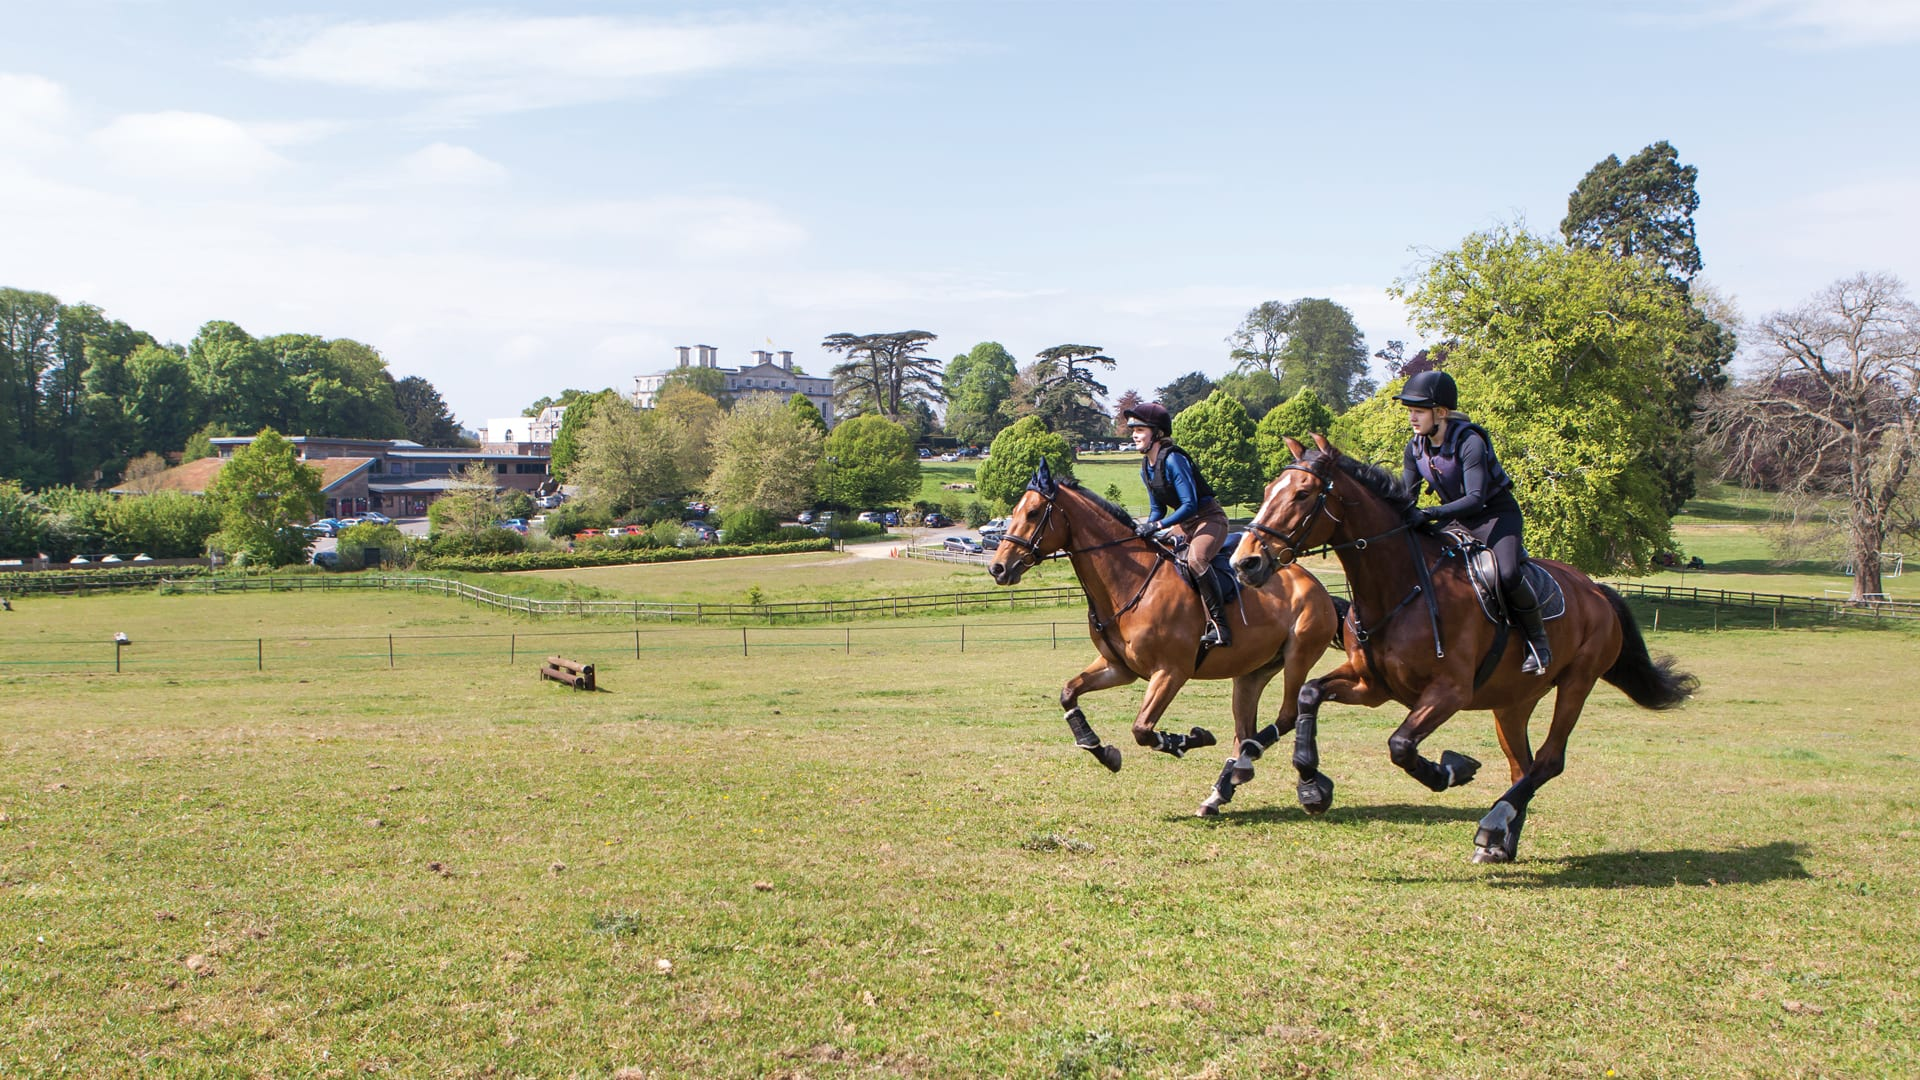 Two Equine students riding across field, with the Main House in the background